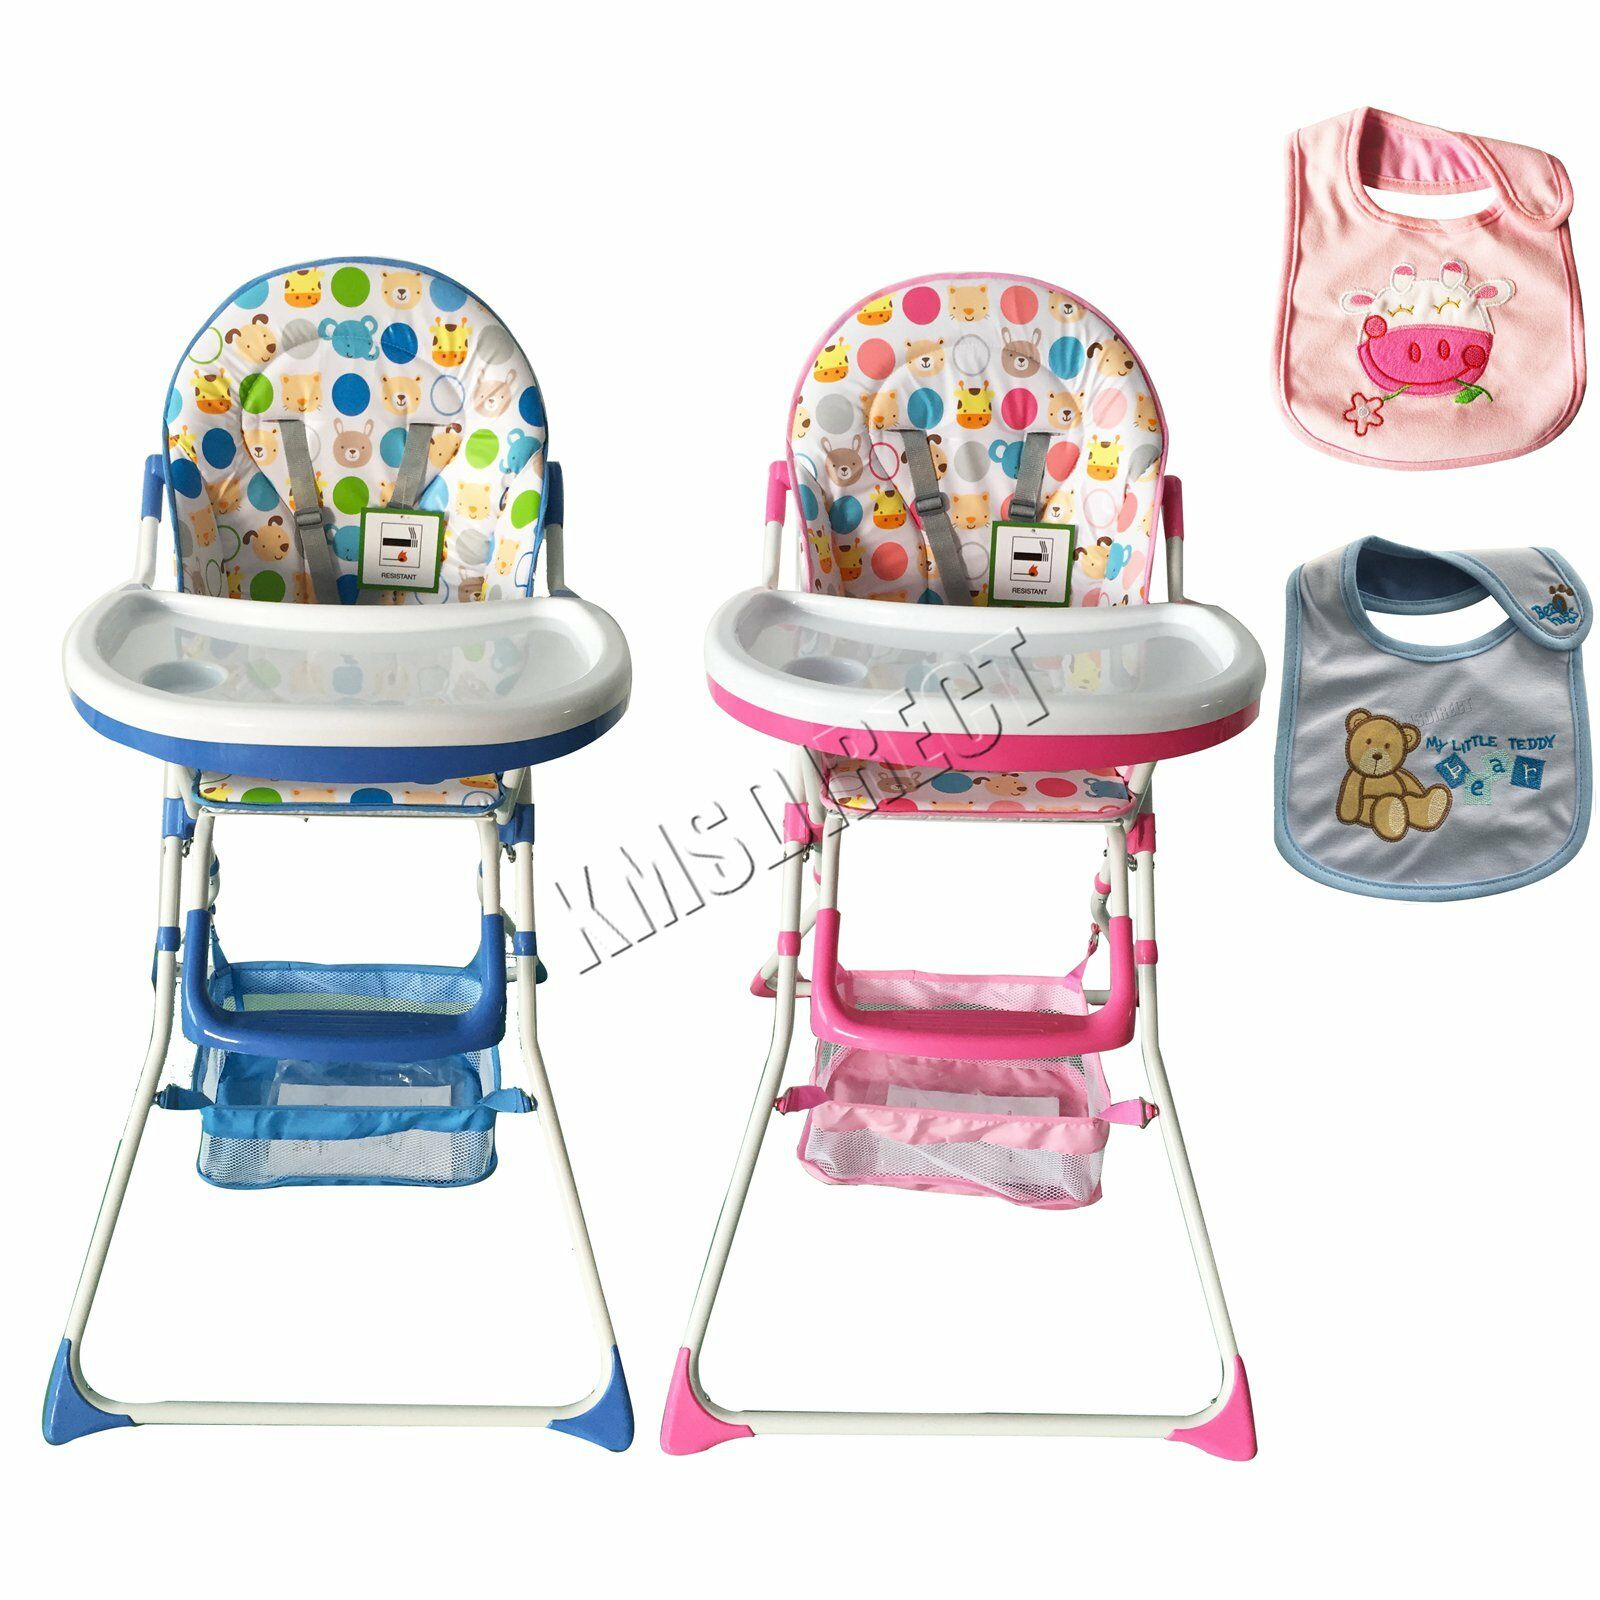 baby high chairs under 50 akracing gaming chair foxhunter portable infant child folding